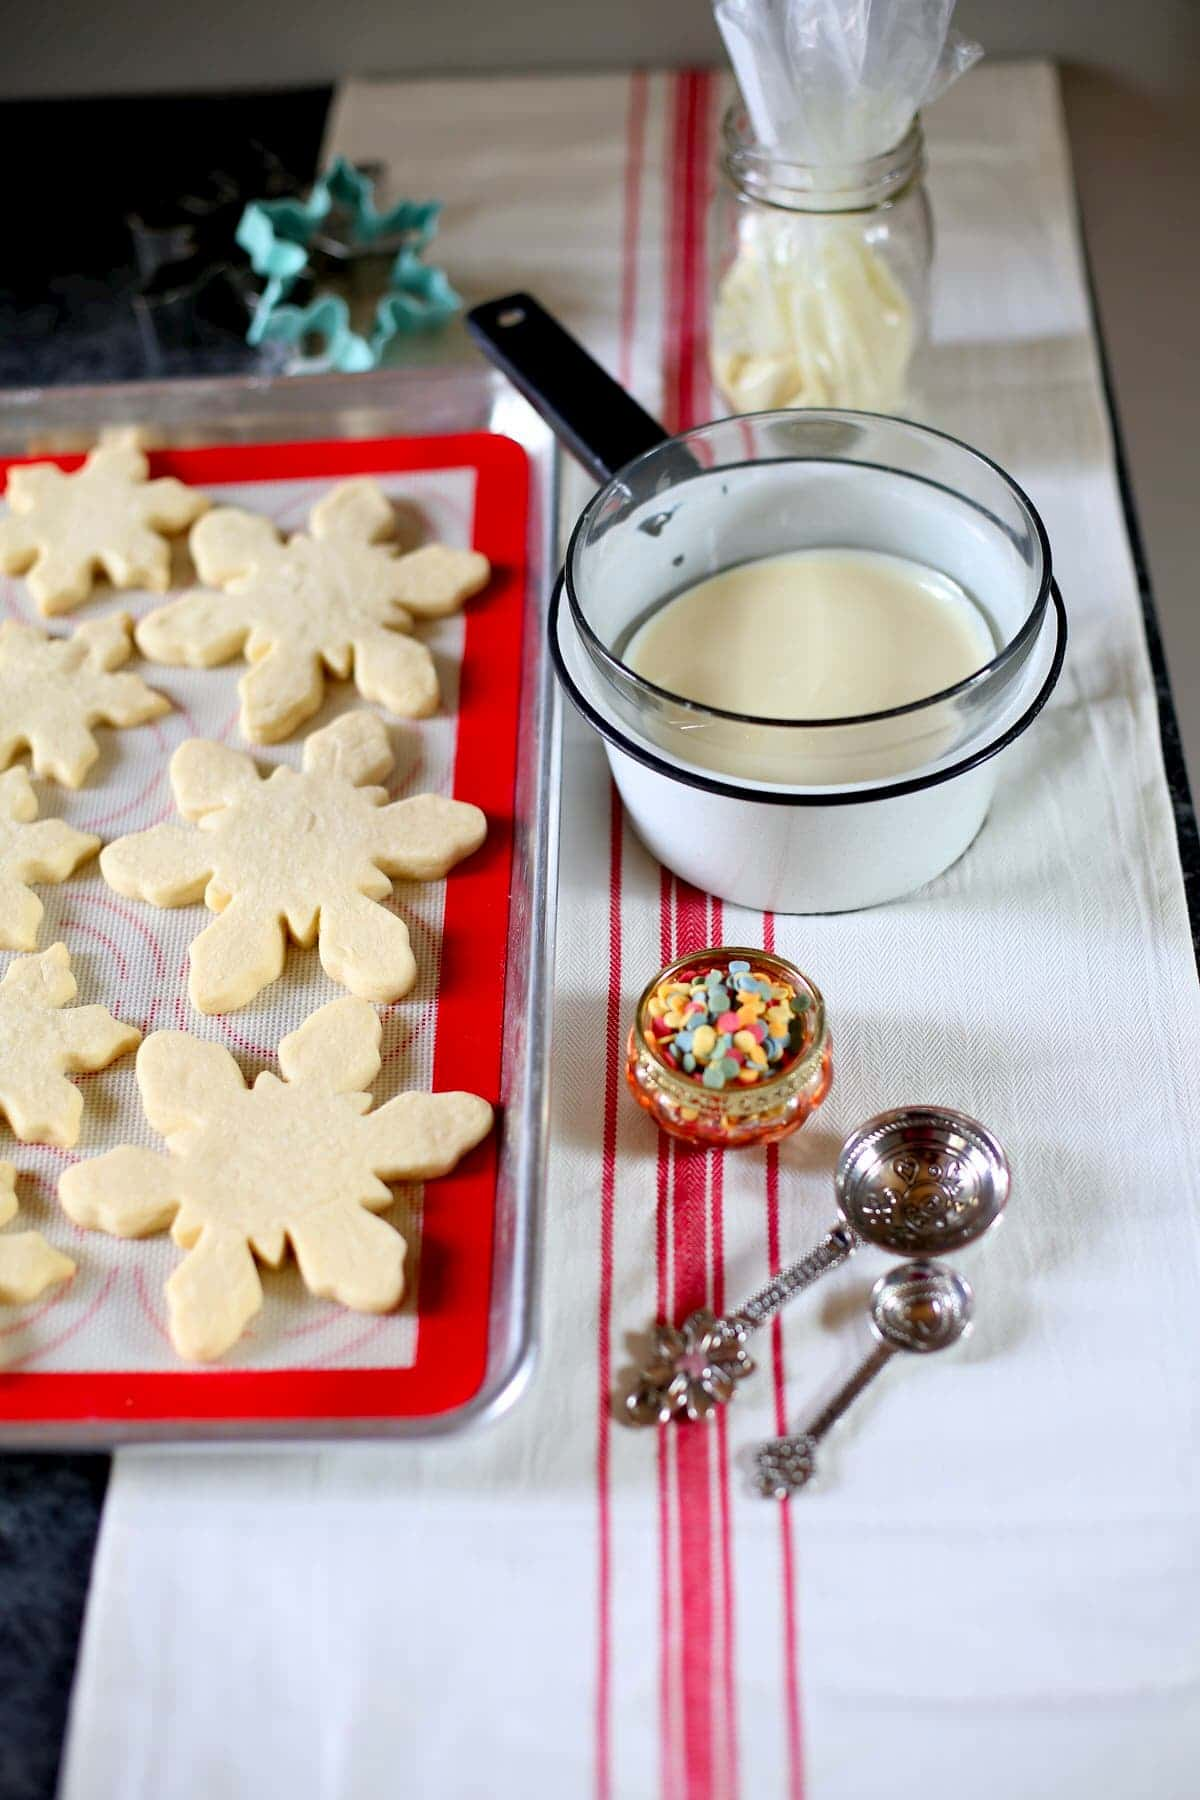 plain unfrosted snowflake cookies and melted white chocolate and sprinkles and measuring spoons on a table